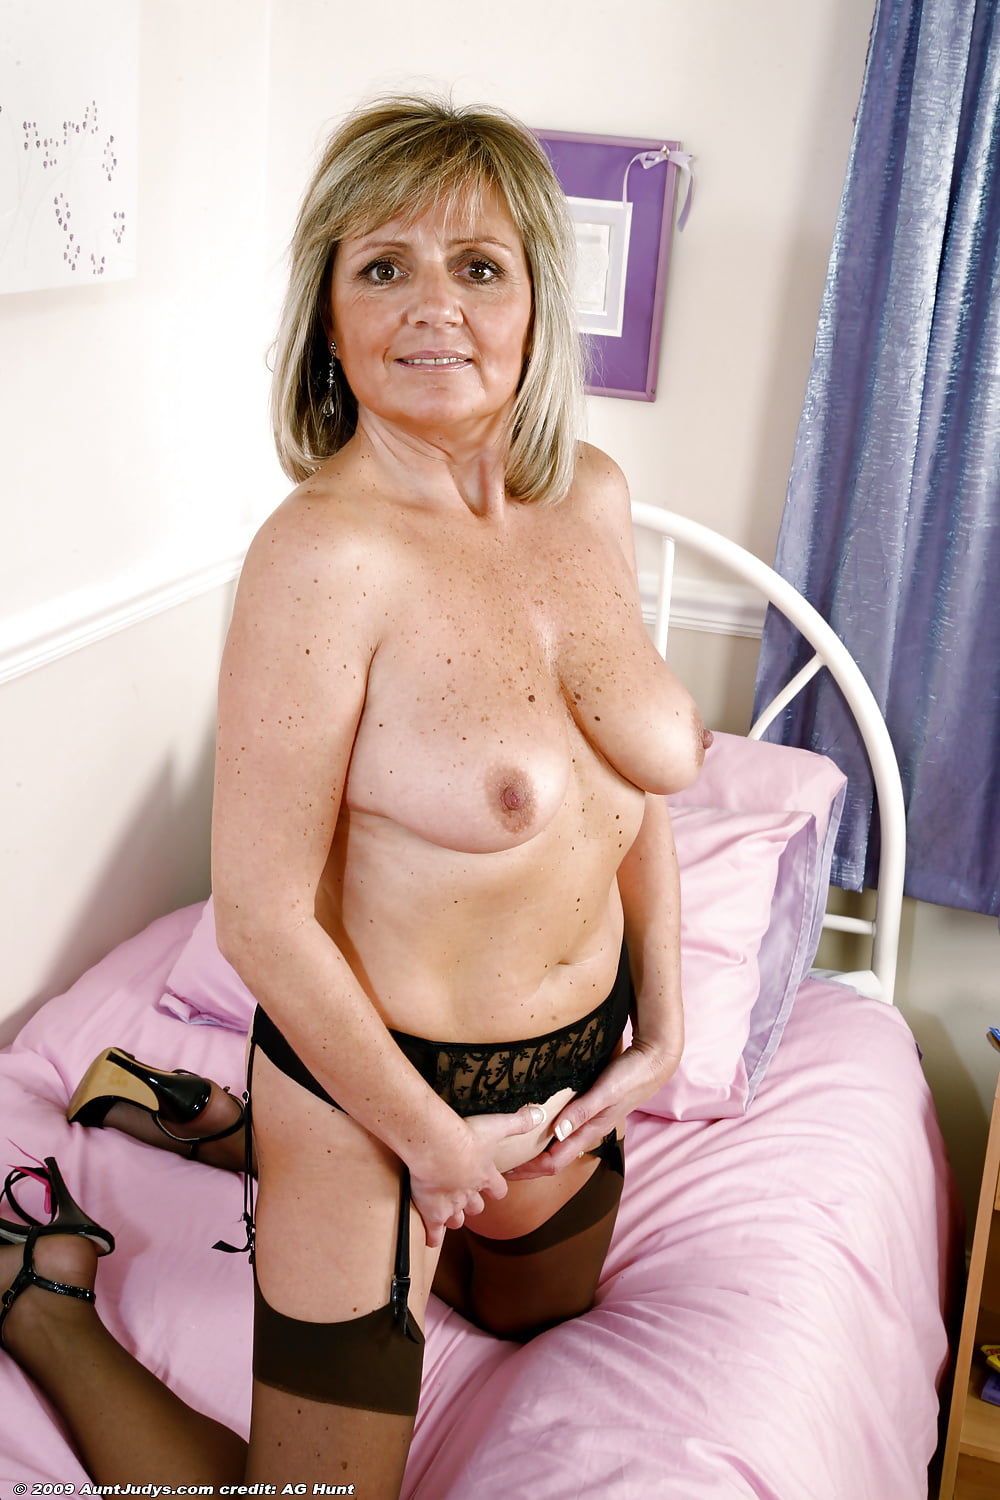 Porn women in their forties, pirate girls having sex